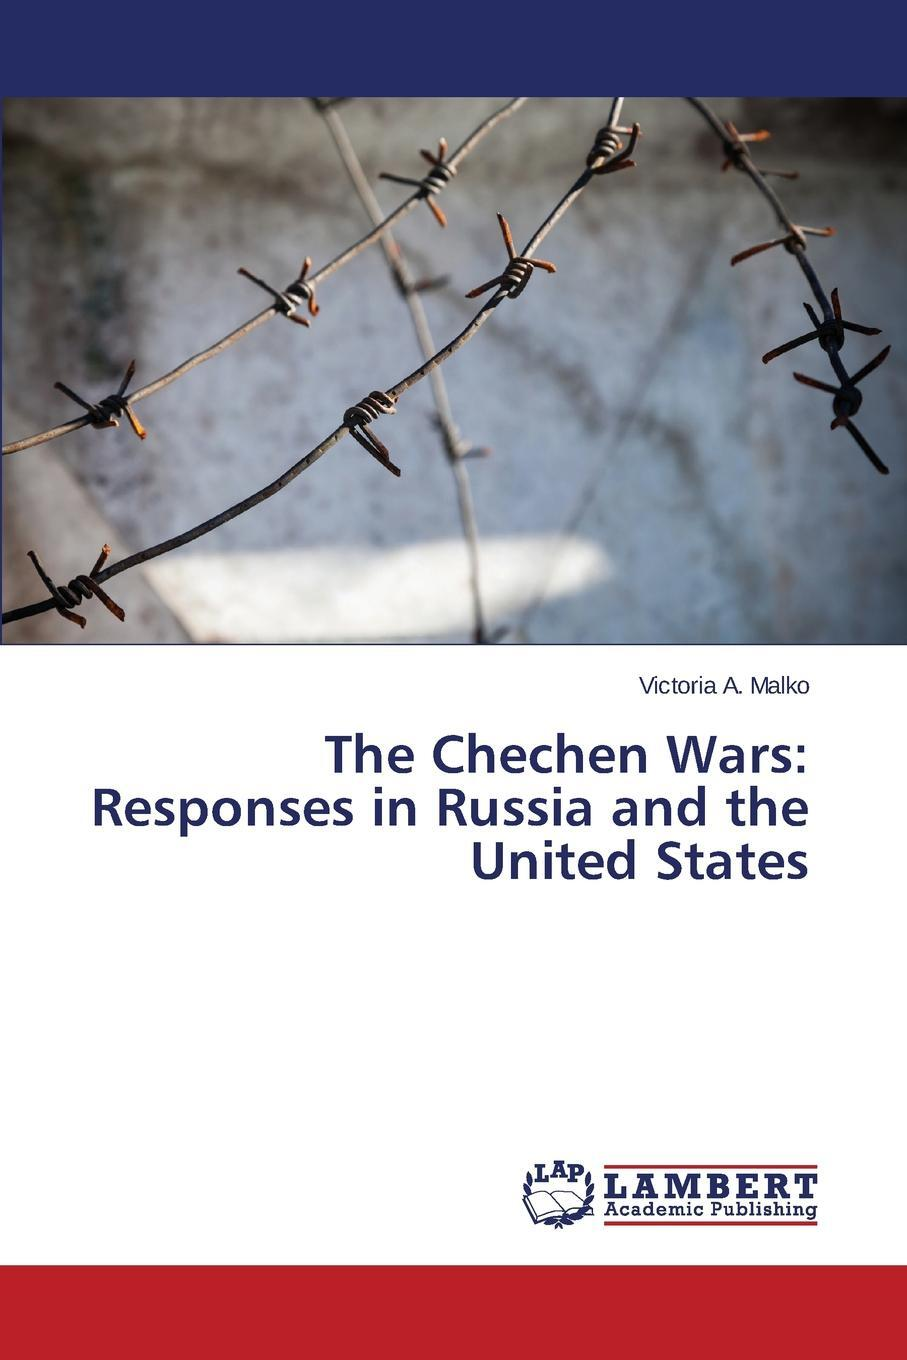 The Chechen Wars. Responses in Russia and the United States